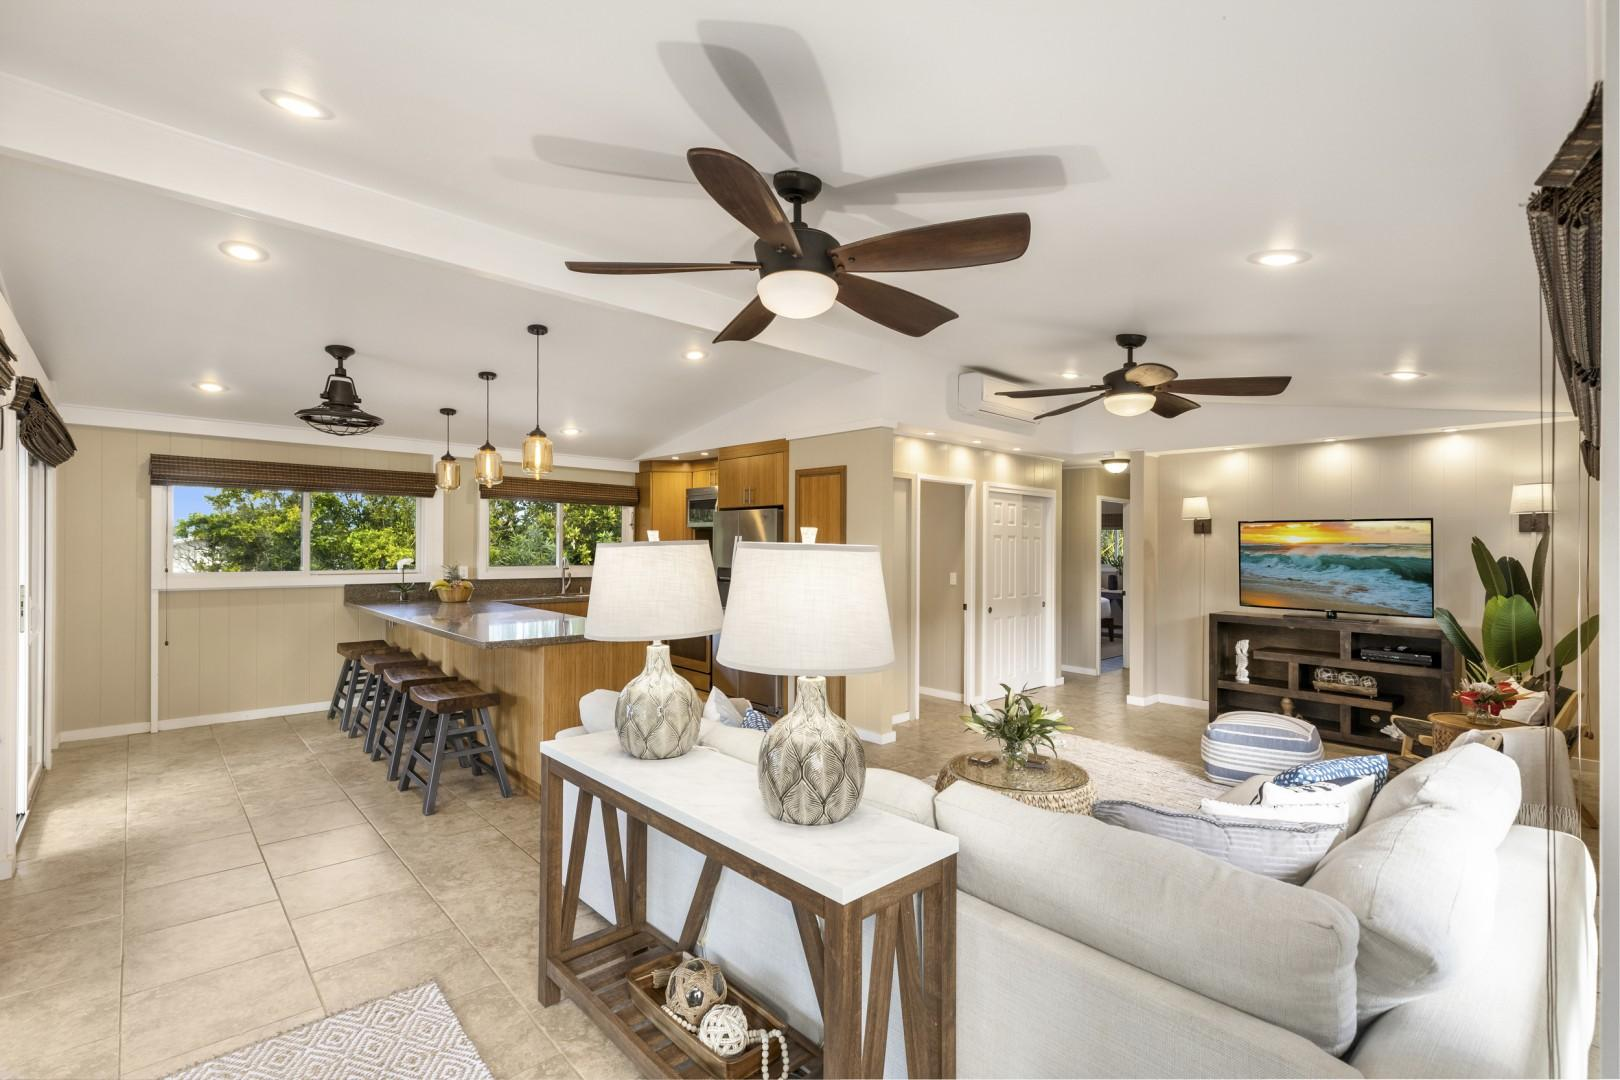 Upstairs great room; living room with large-screen tv and eat-in kitchen with stainless appliances and gas stove